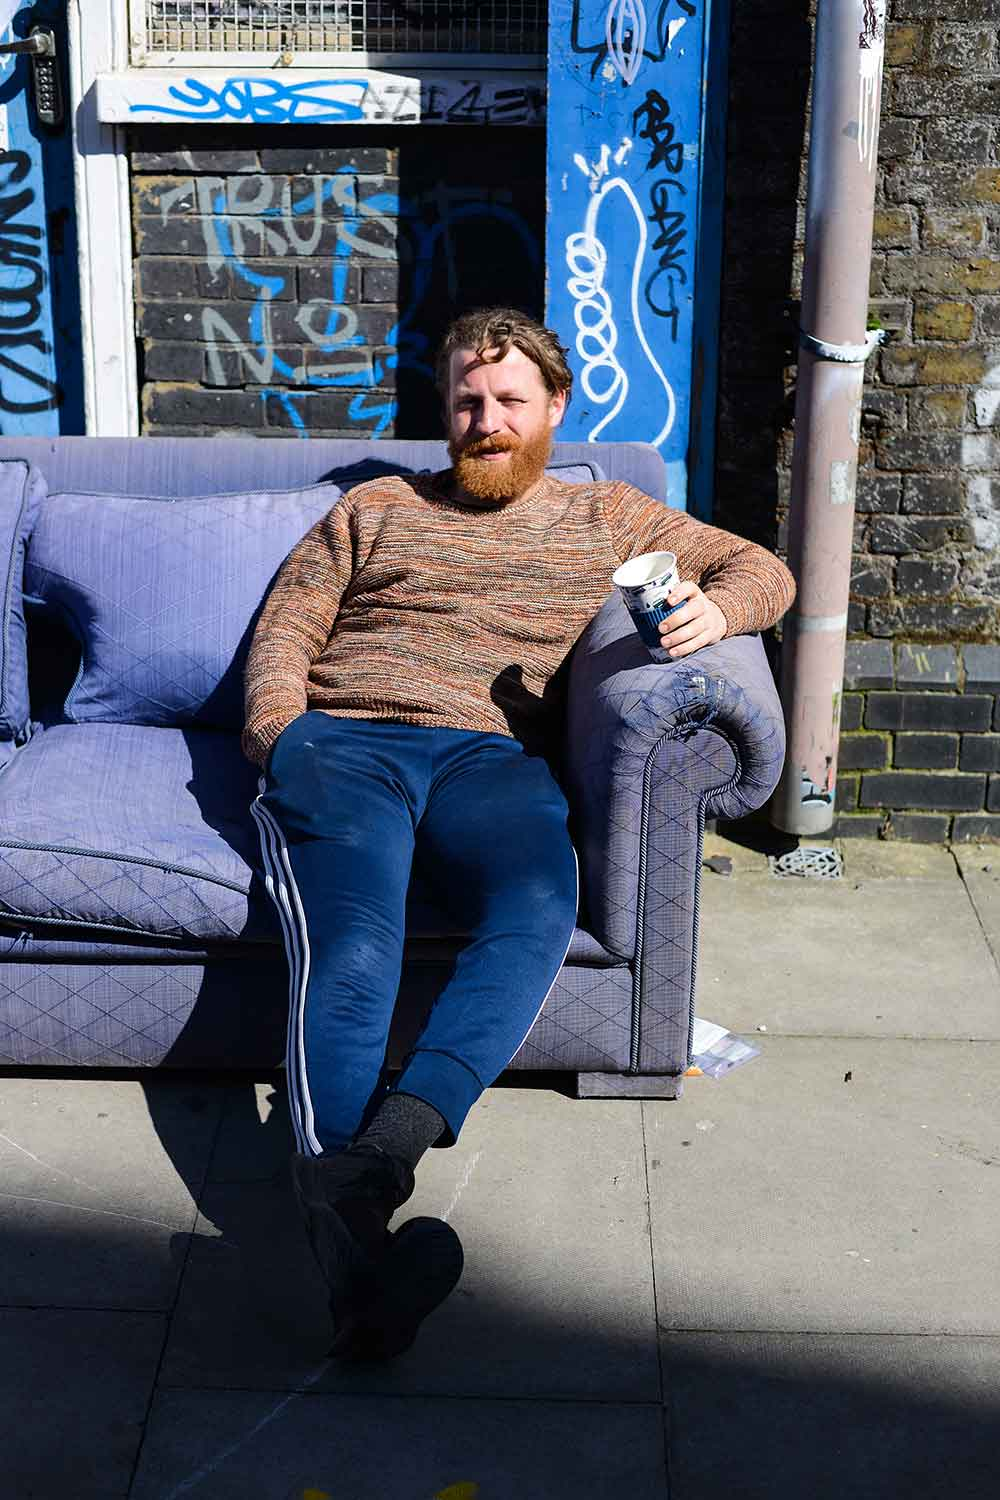 Man relaxing on a purple couch outside his home photographs of Bow in lockdown by Matt Payne